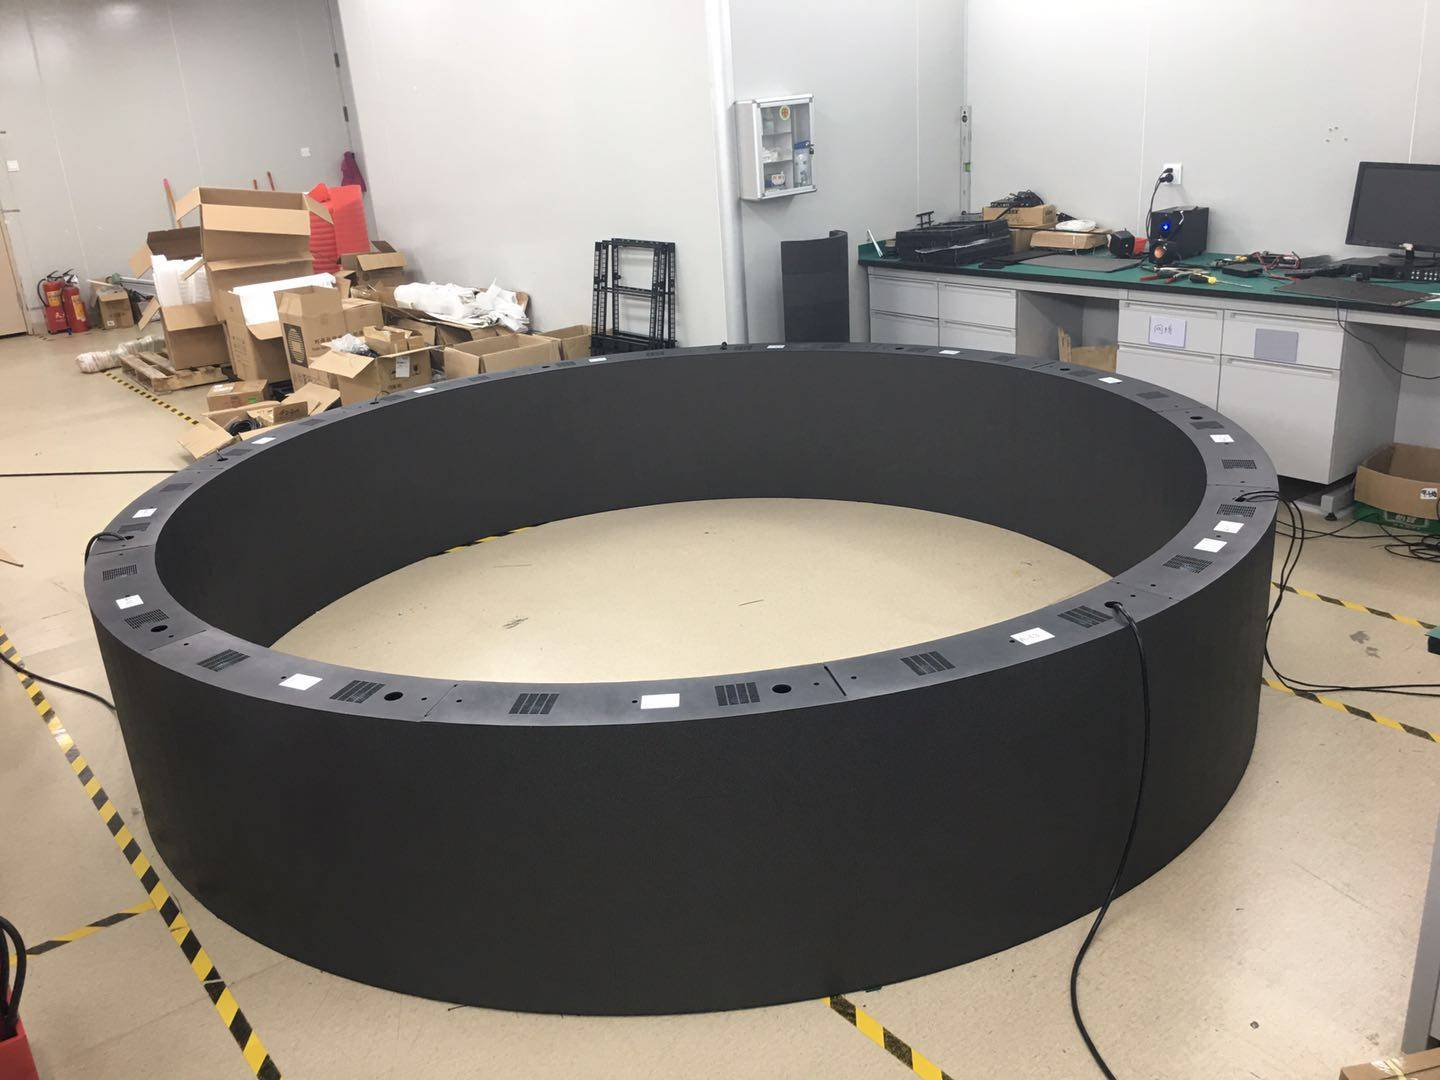 Double-sided circular LED display